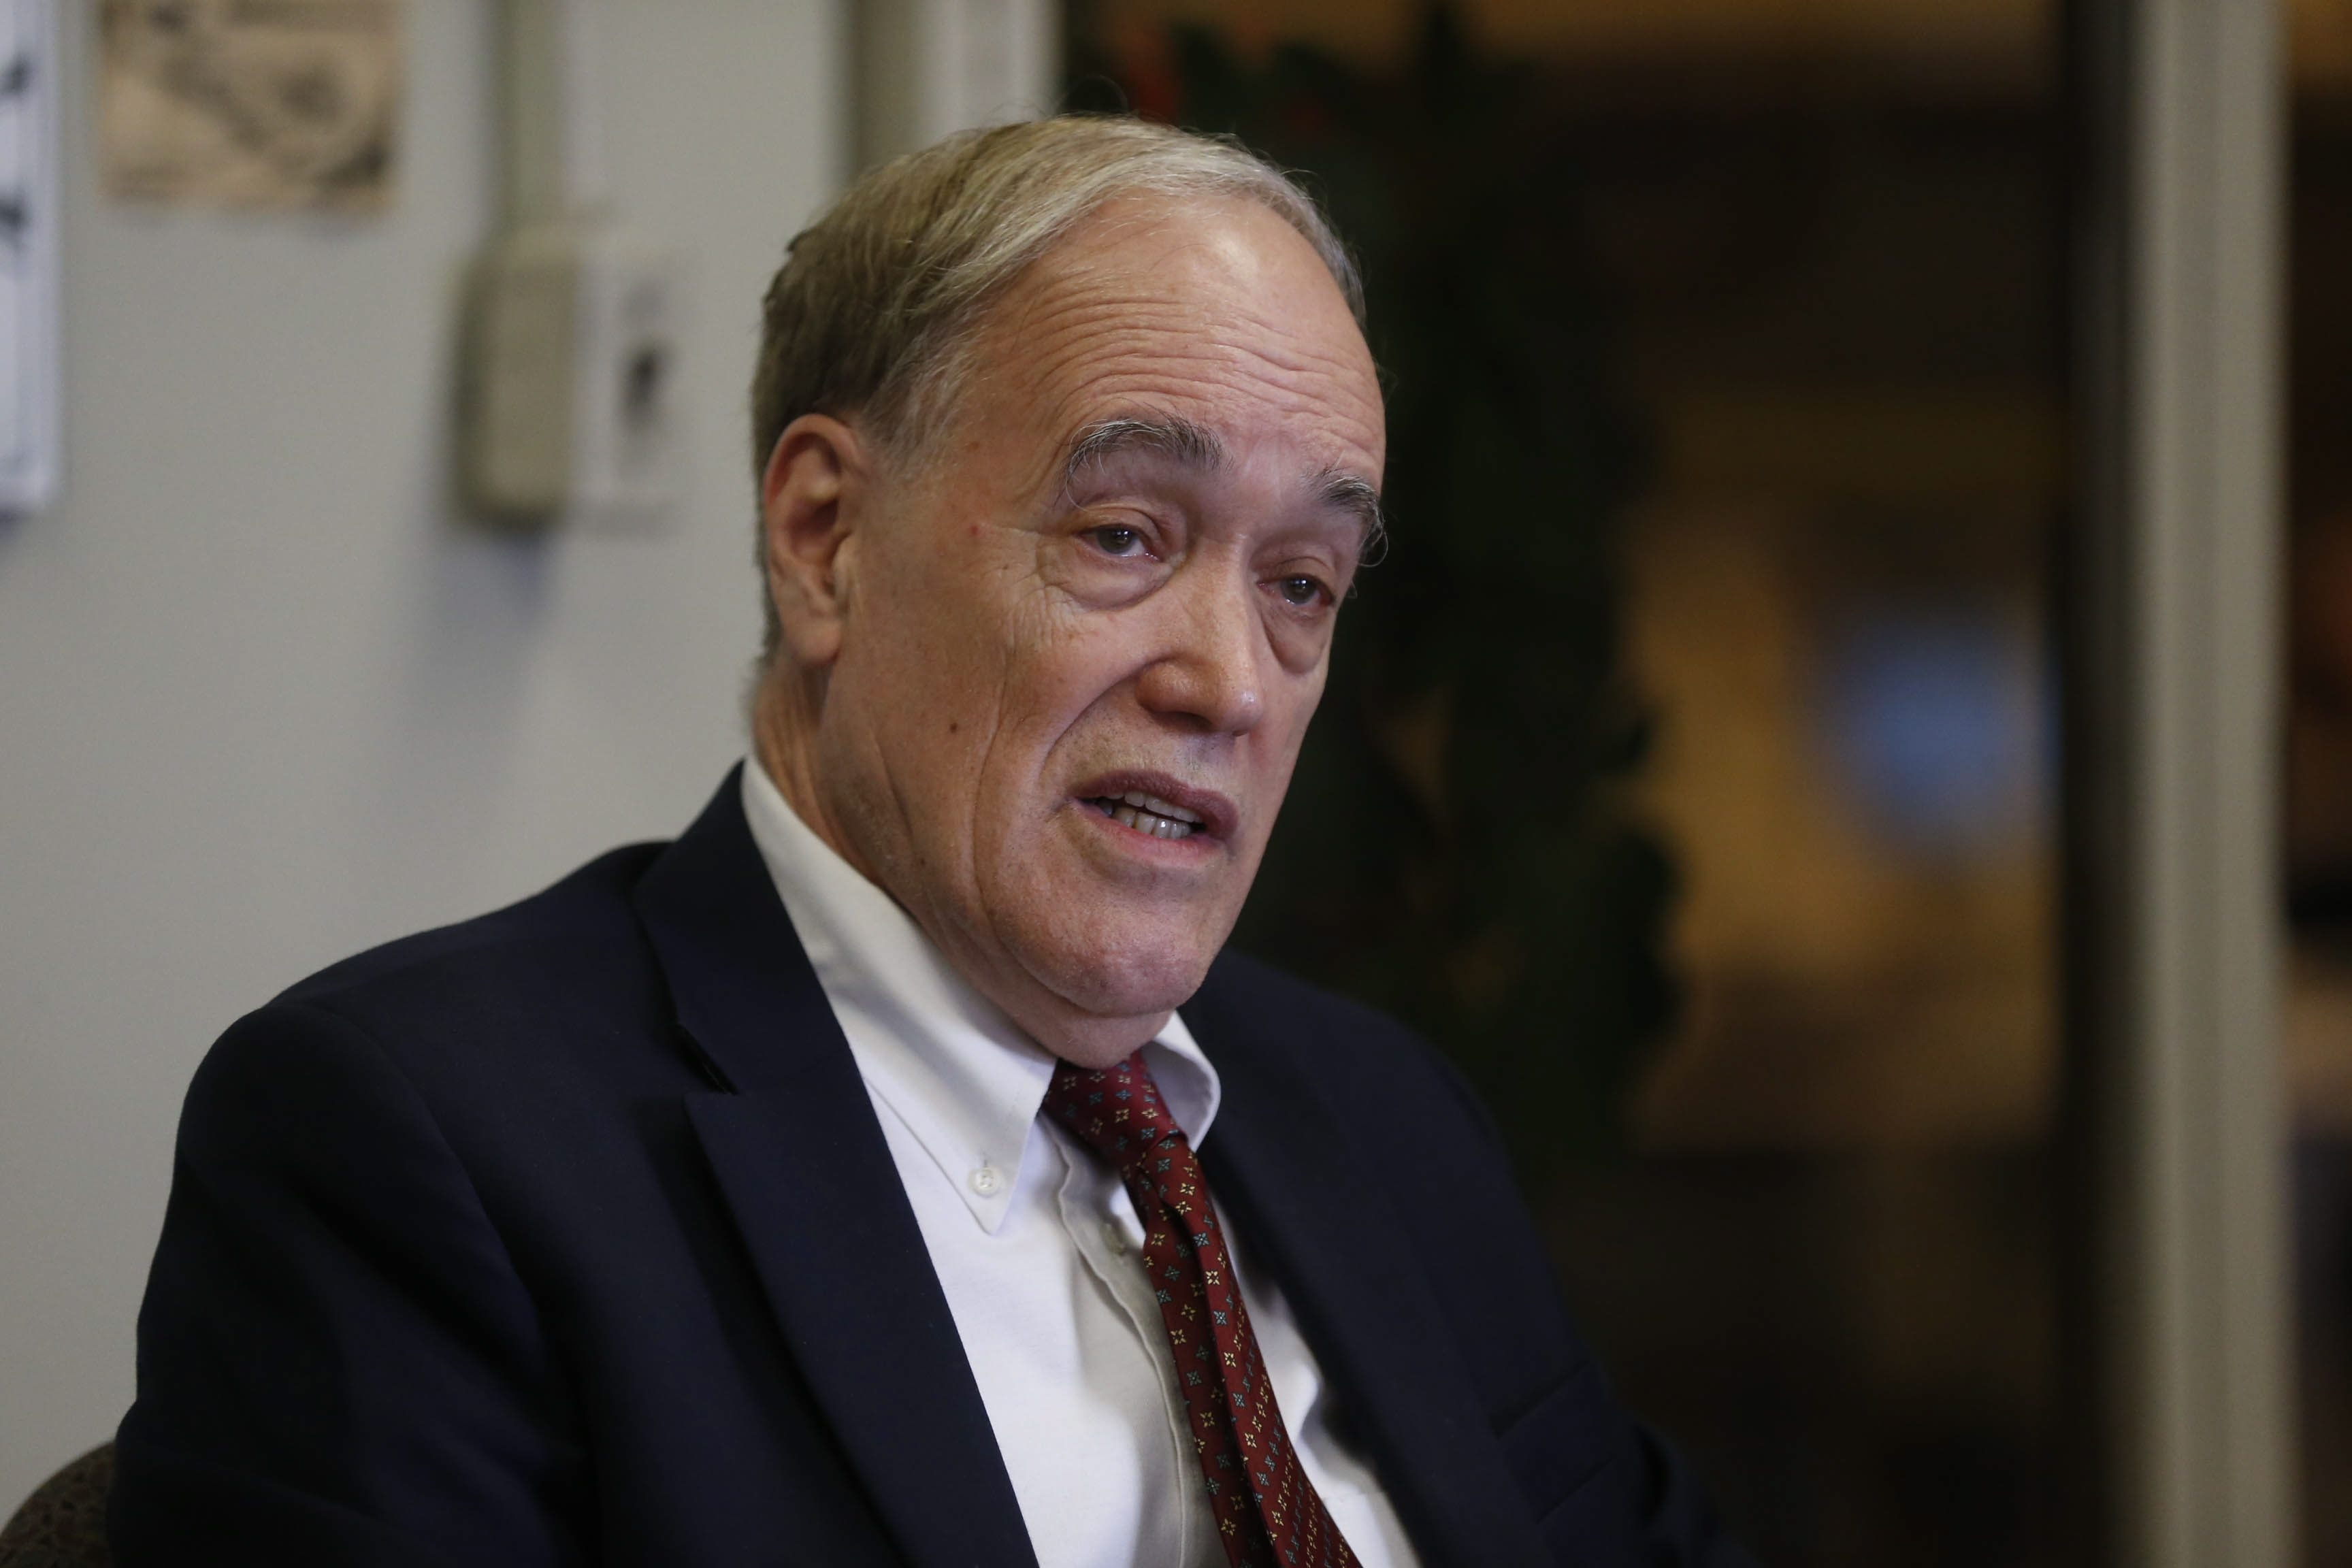 Gary Orfield, head of UCLA's Civil Rights Project, has recommended a series of changes that aren't sitting well with the Buffalo Board of Education. (Robert Kirkham/Buffalo News file photo)